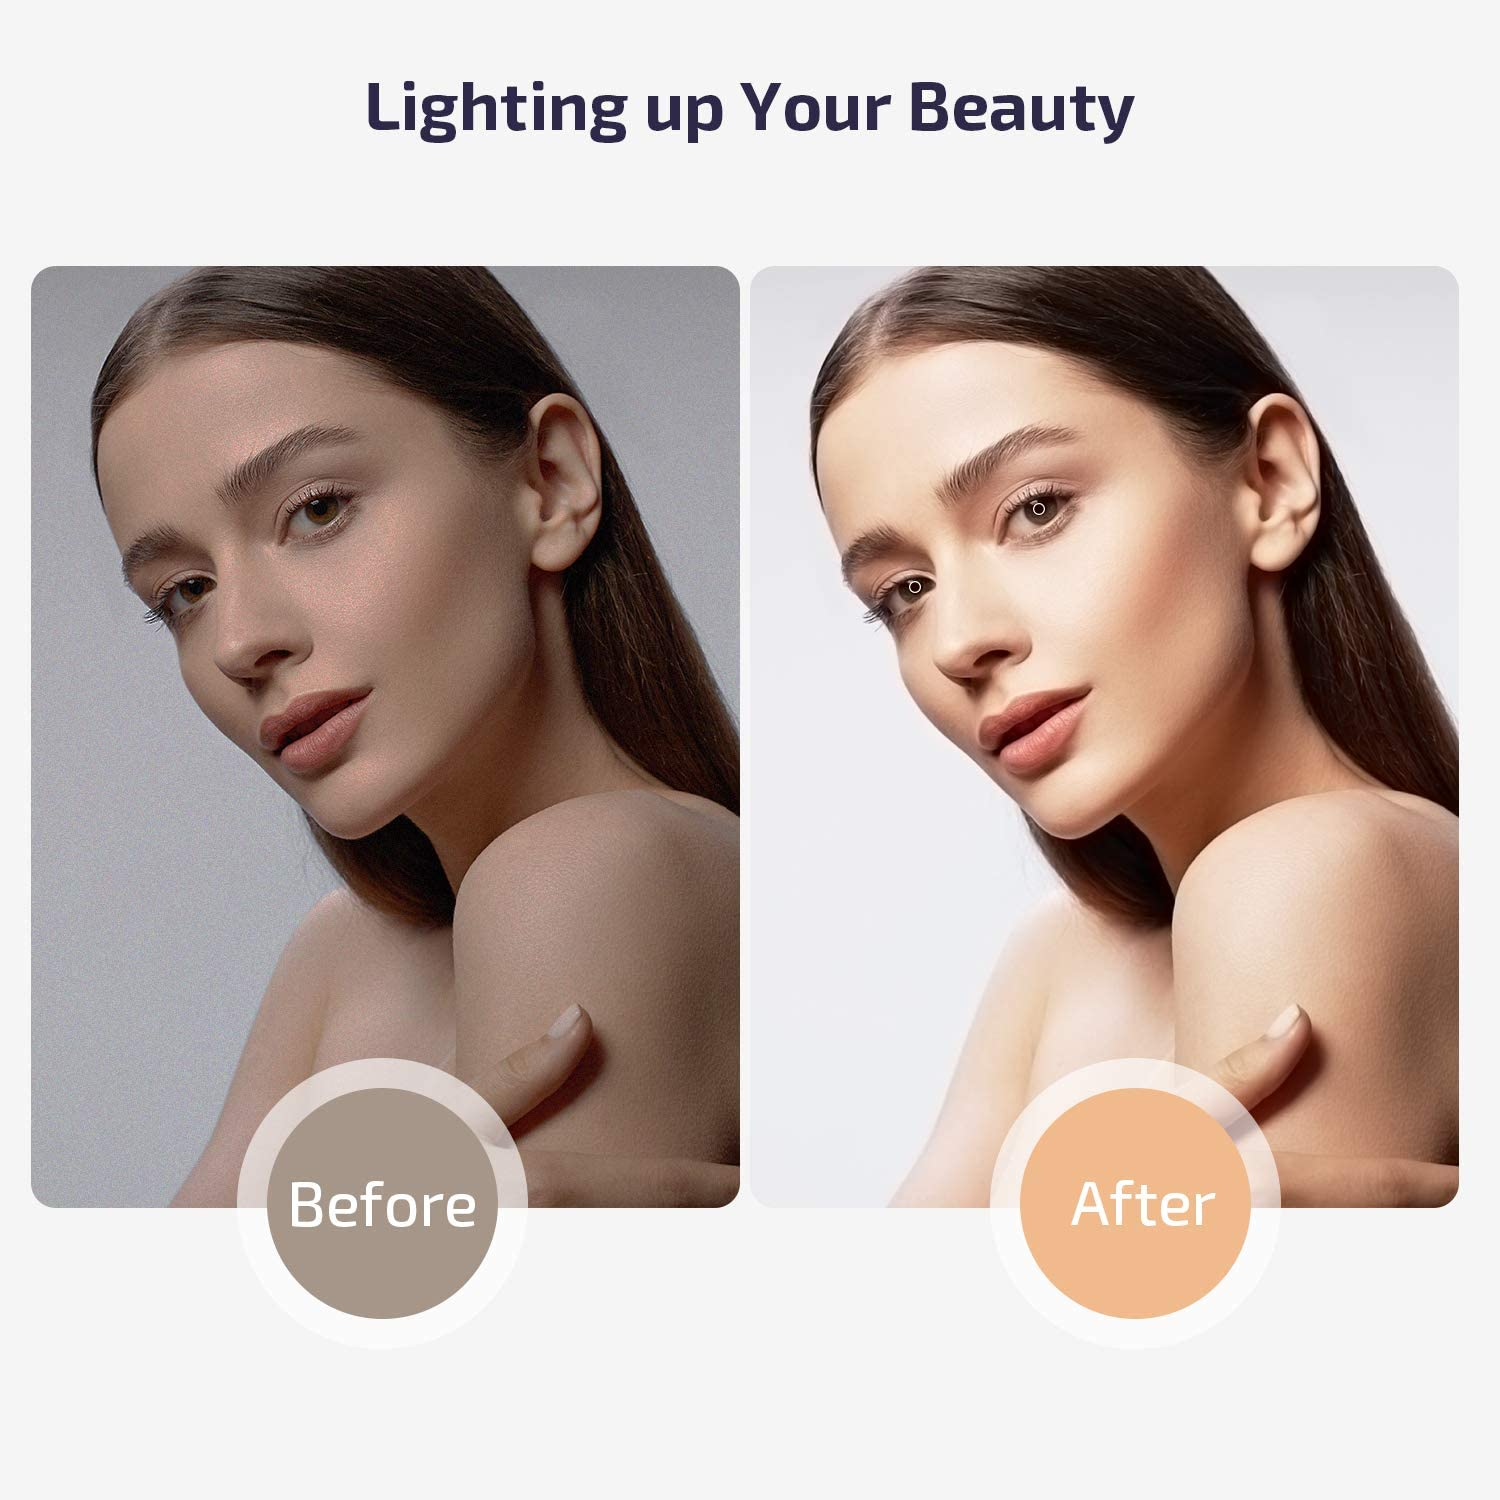 10-inch Led Ring Light with Tripod Stand & 2 Phone Holder,LETSCOM Dimmable Desk Selfie Ringlight for Makeup YouTube Video Live Streaming Photography,3 Light Modes & 10 Brightness Levels